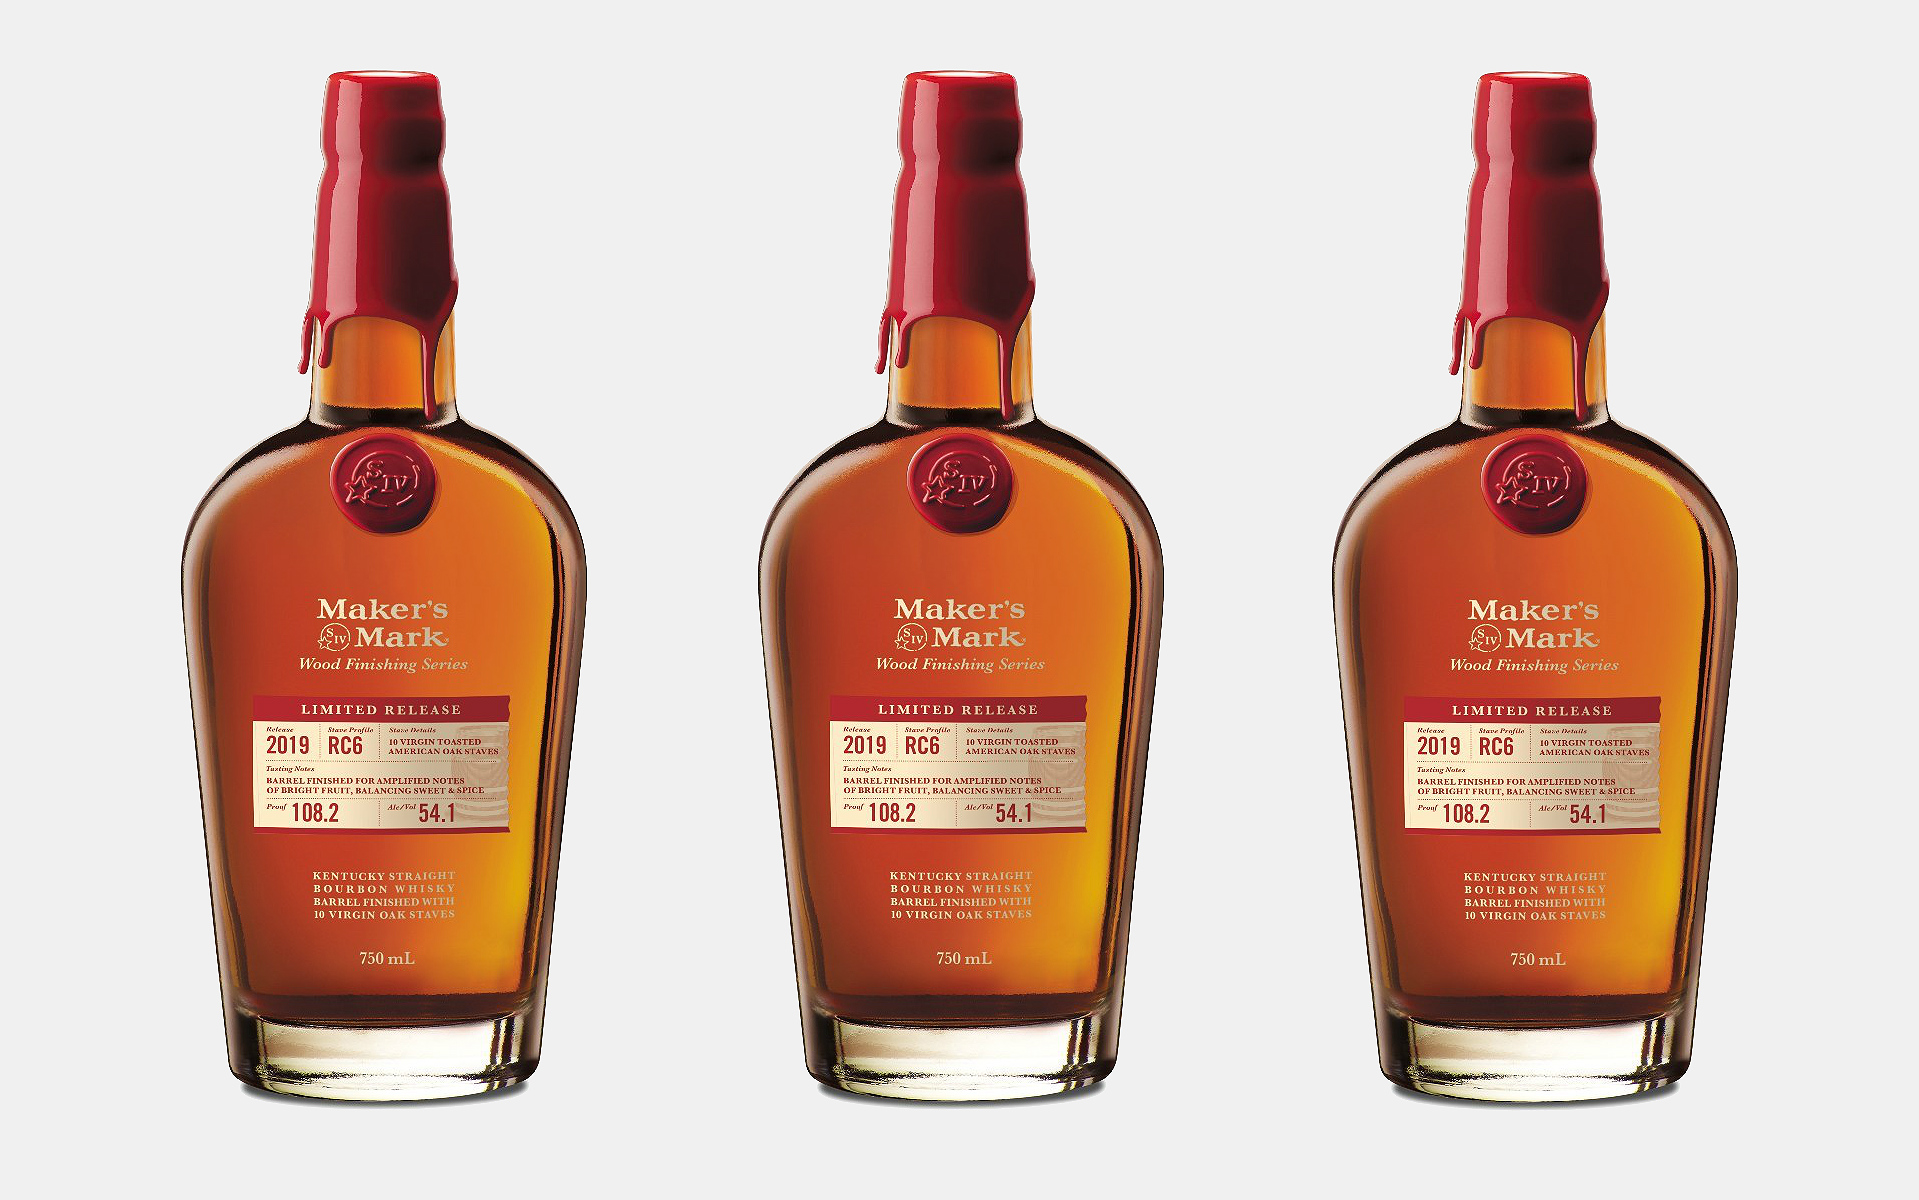 Maker's Mark Wood Finishing Series 2019 Limited Release Bourbon